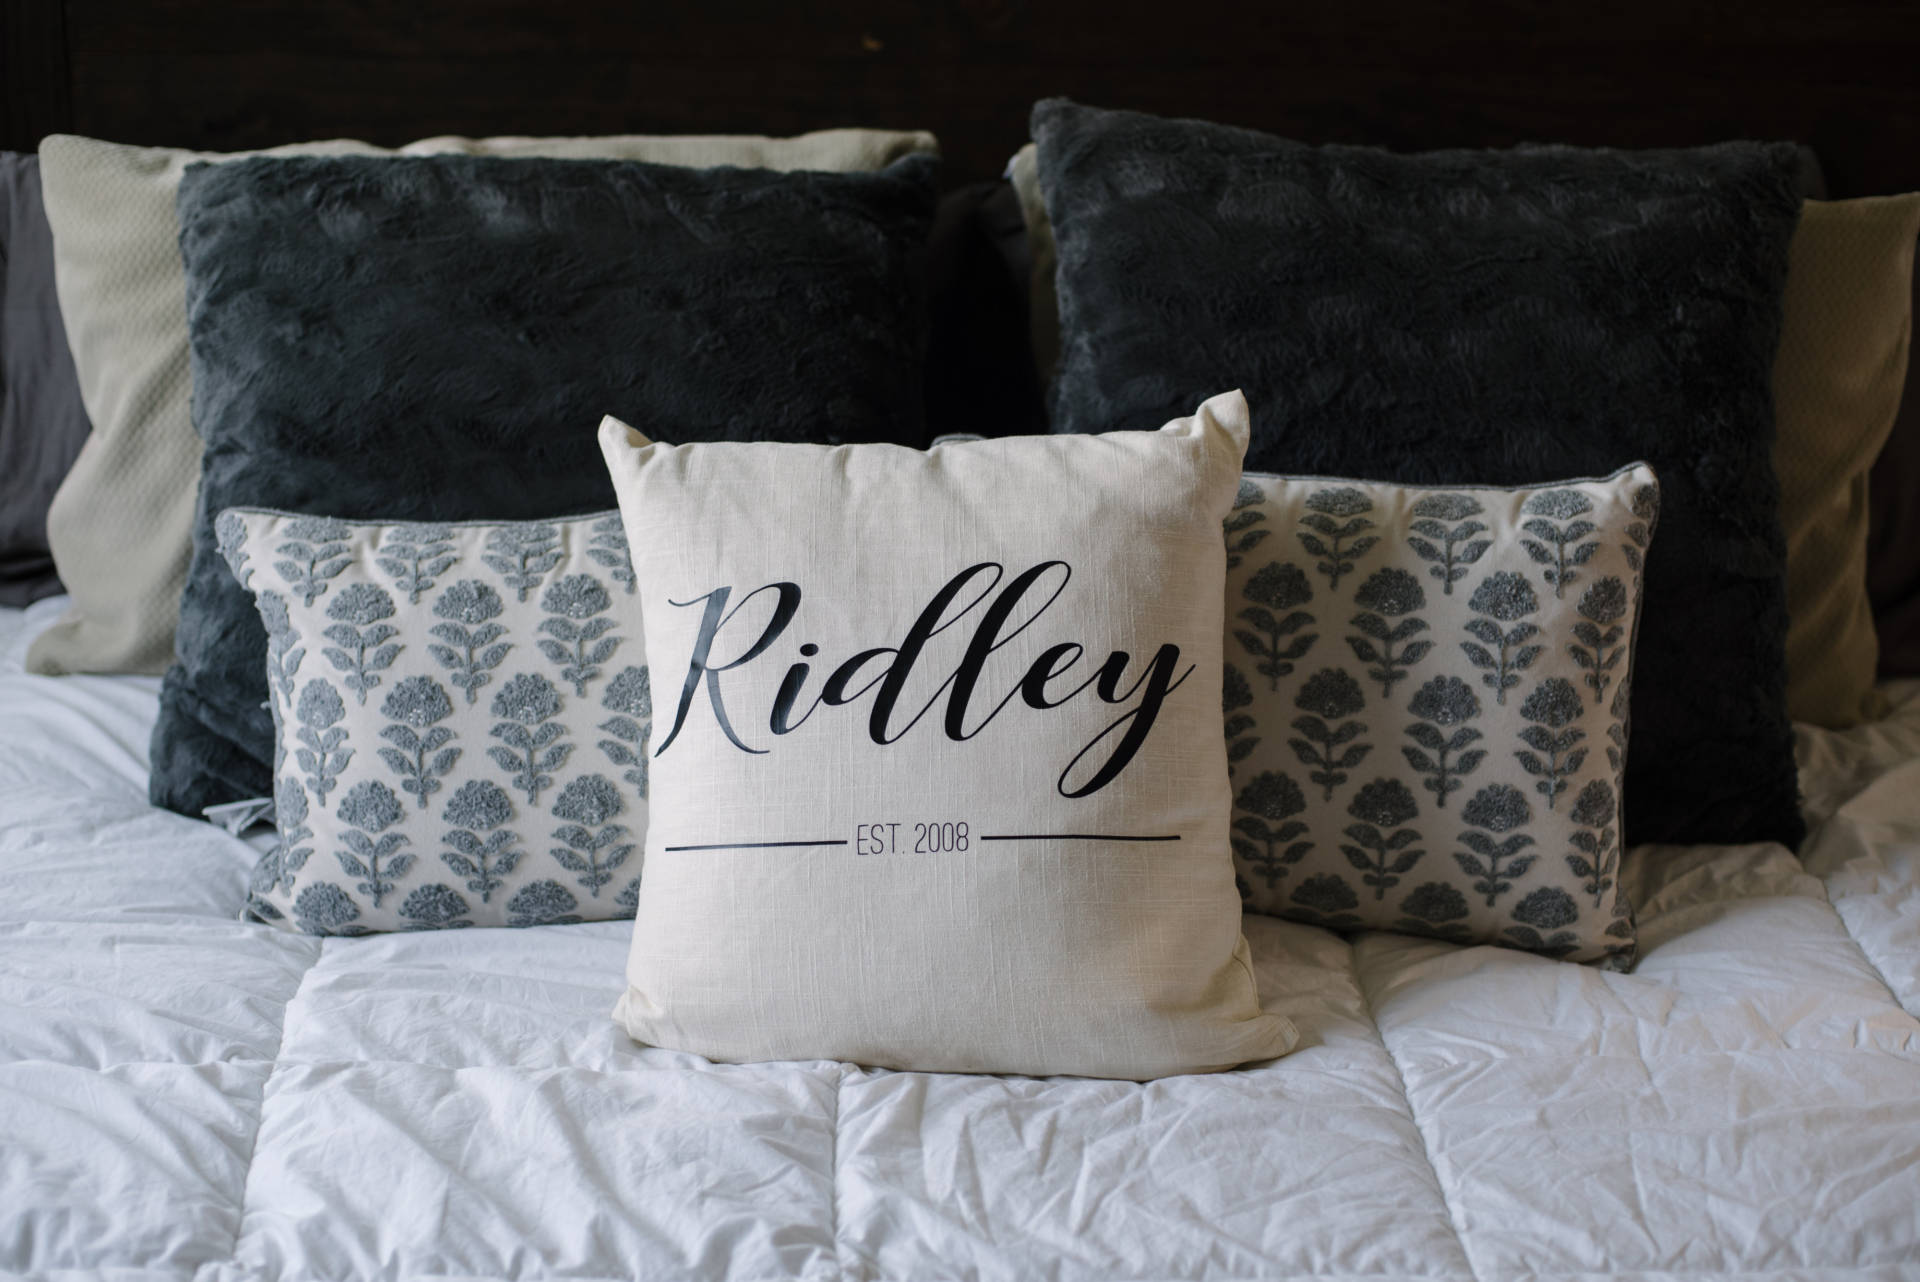 From kitchenware to room decor, Shop LC has everything you need at an affordable price! I have found what we need for our bedroom refresh for 100.00.